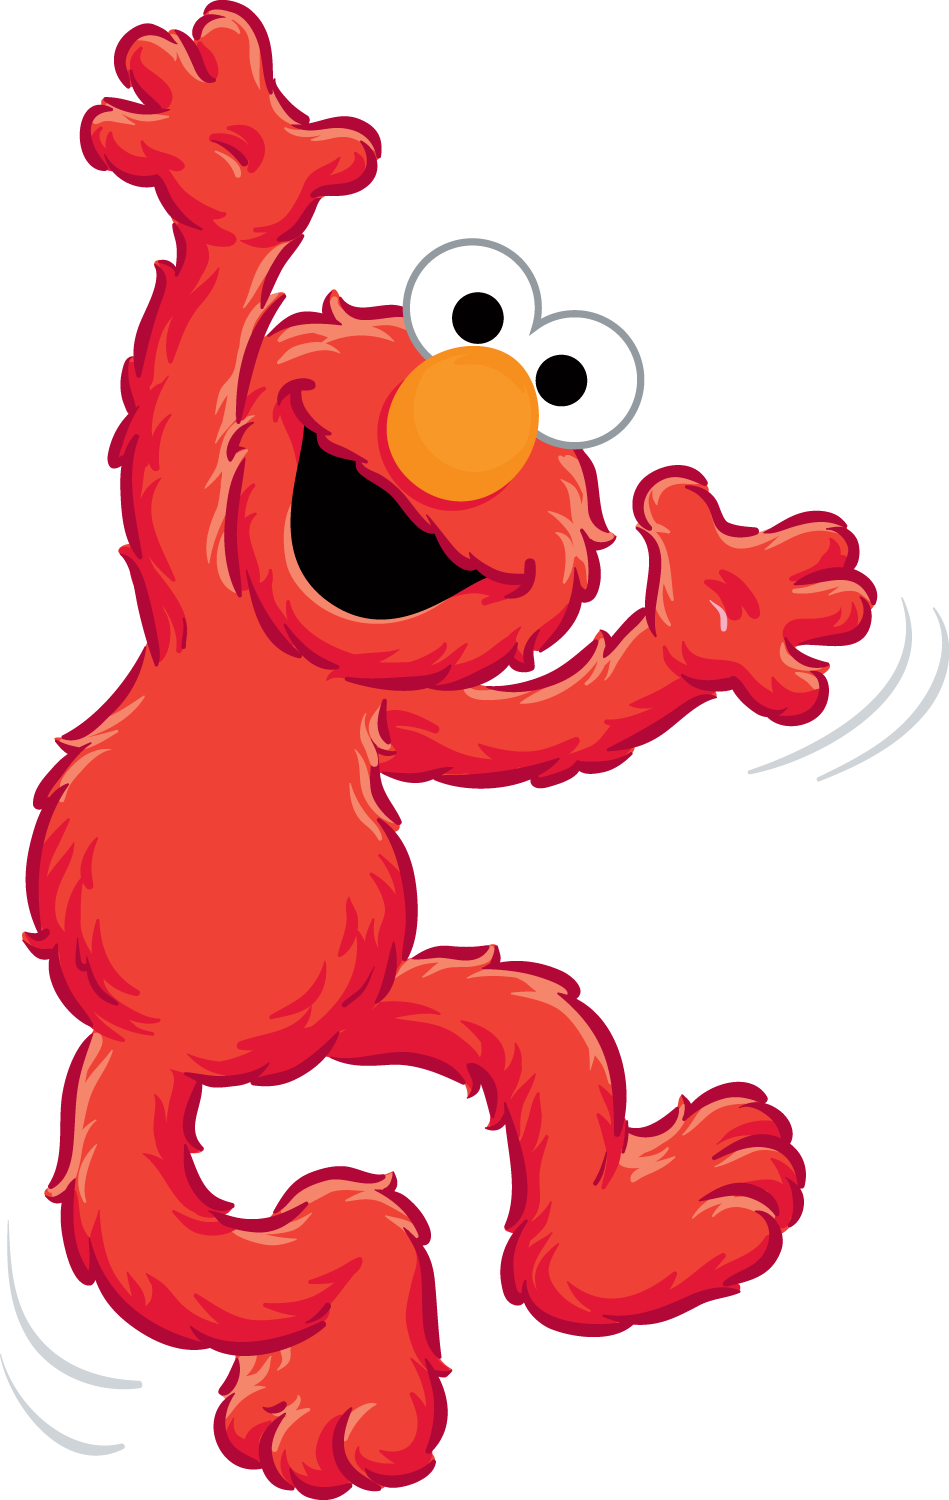 Sesame street party clipart png transparent library 8 images elmo. Free cliparts | Elmo in 2019 | Elmo, Elmo ... png transparent library